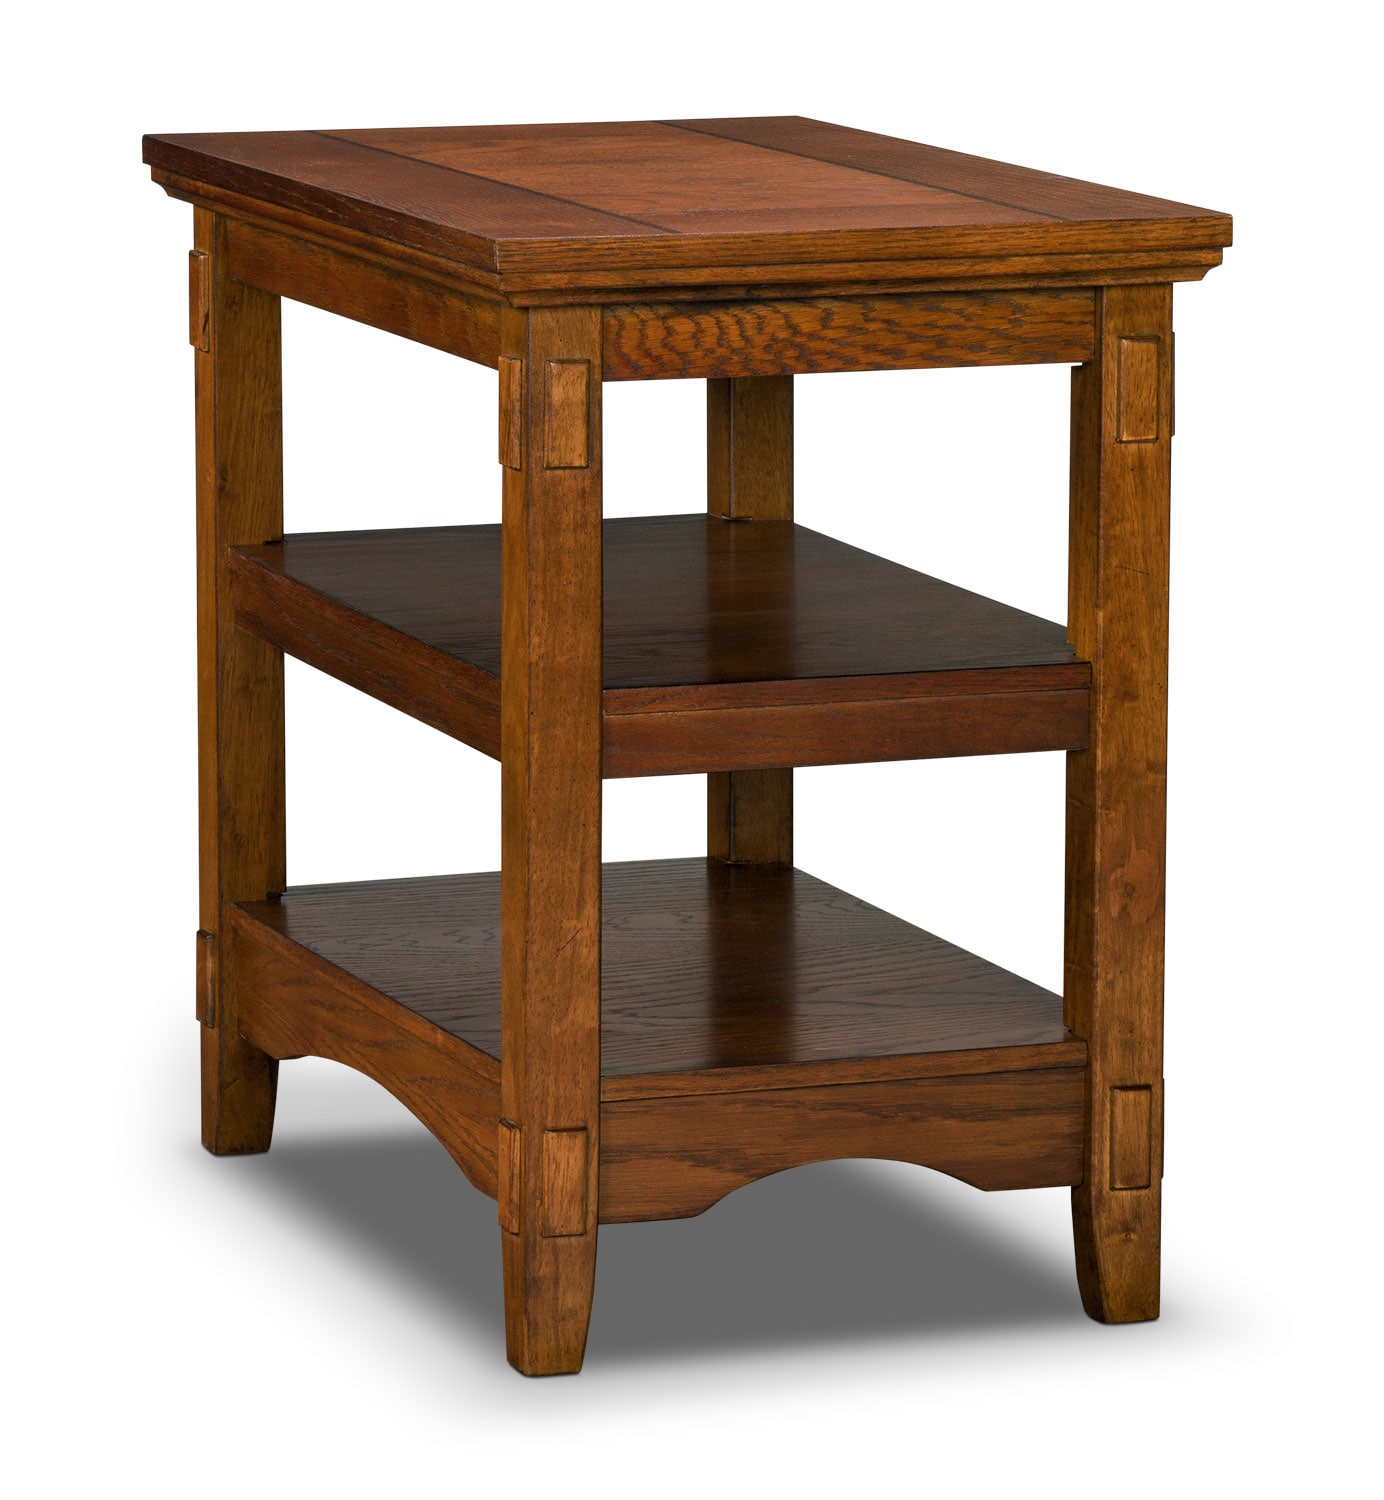 Cross Island Coffee Table With Lift Top And Casters The